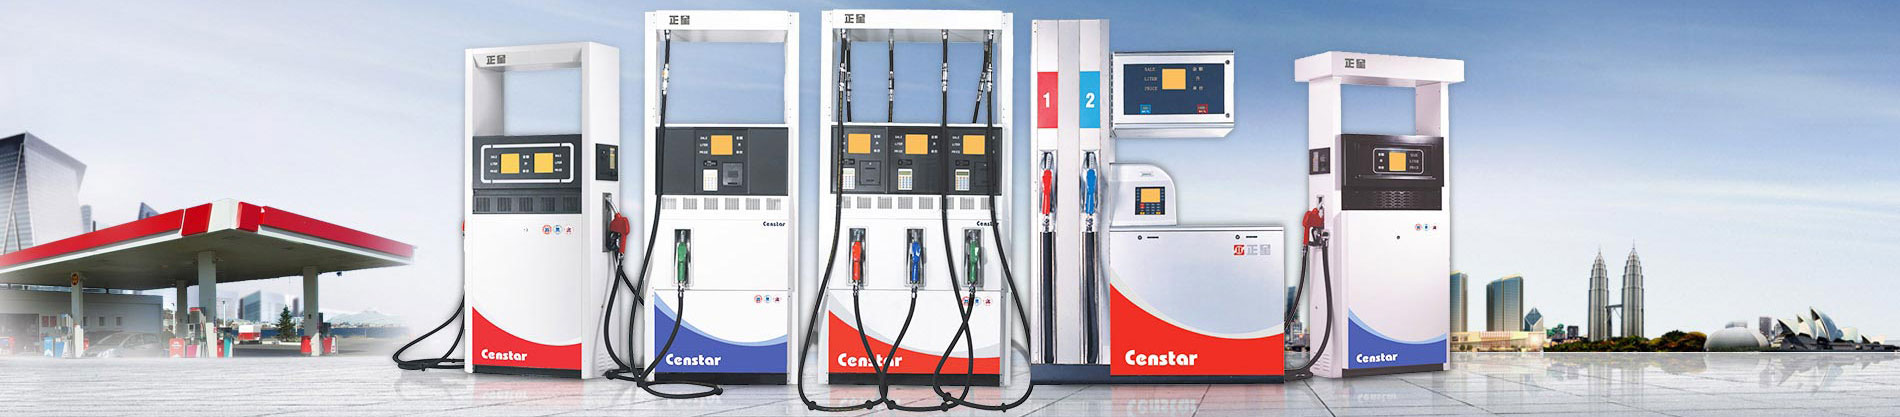 fuel station dispenser/ petrol station fuel dispenser/Gas Dispenser for LPG CNG